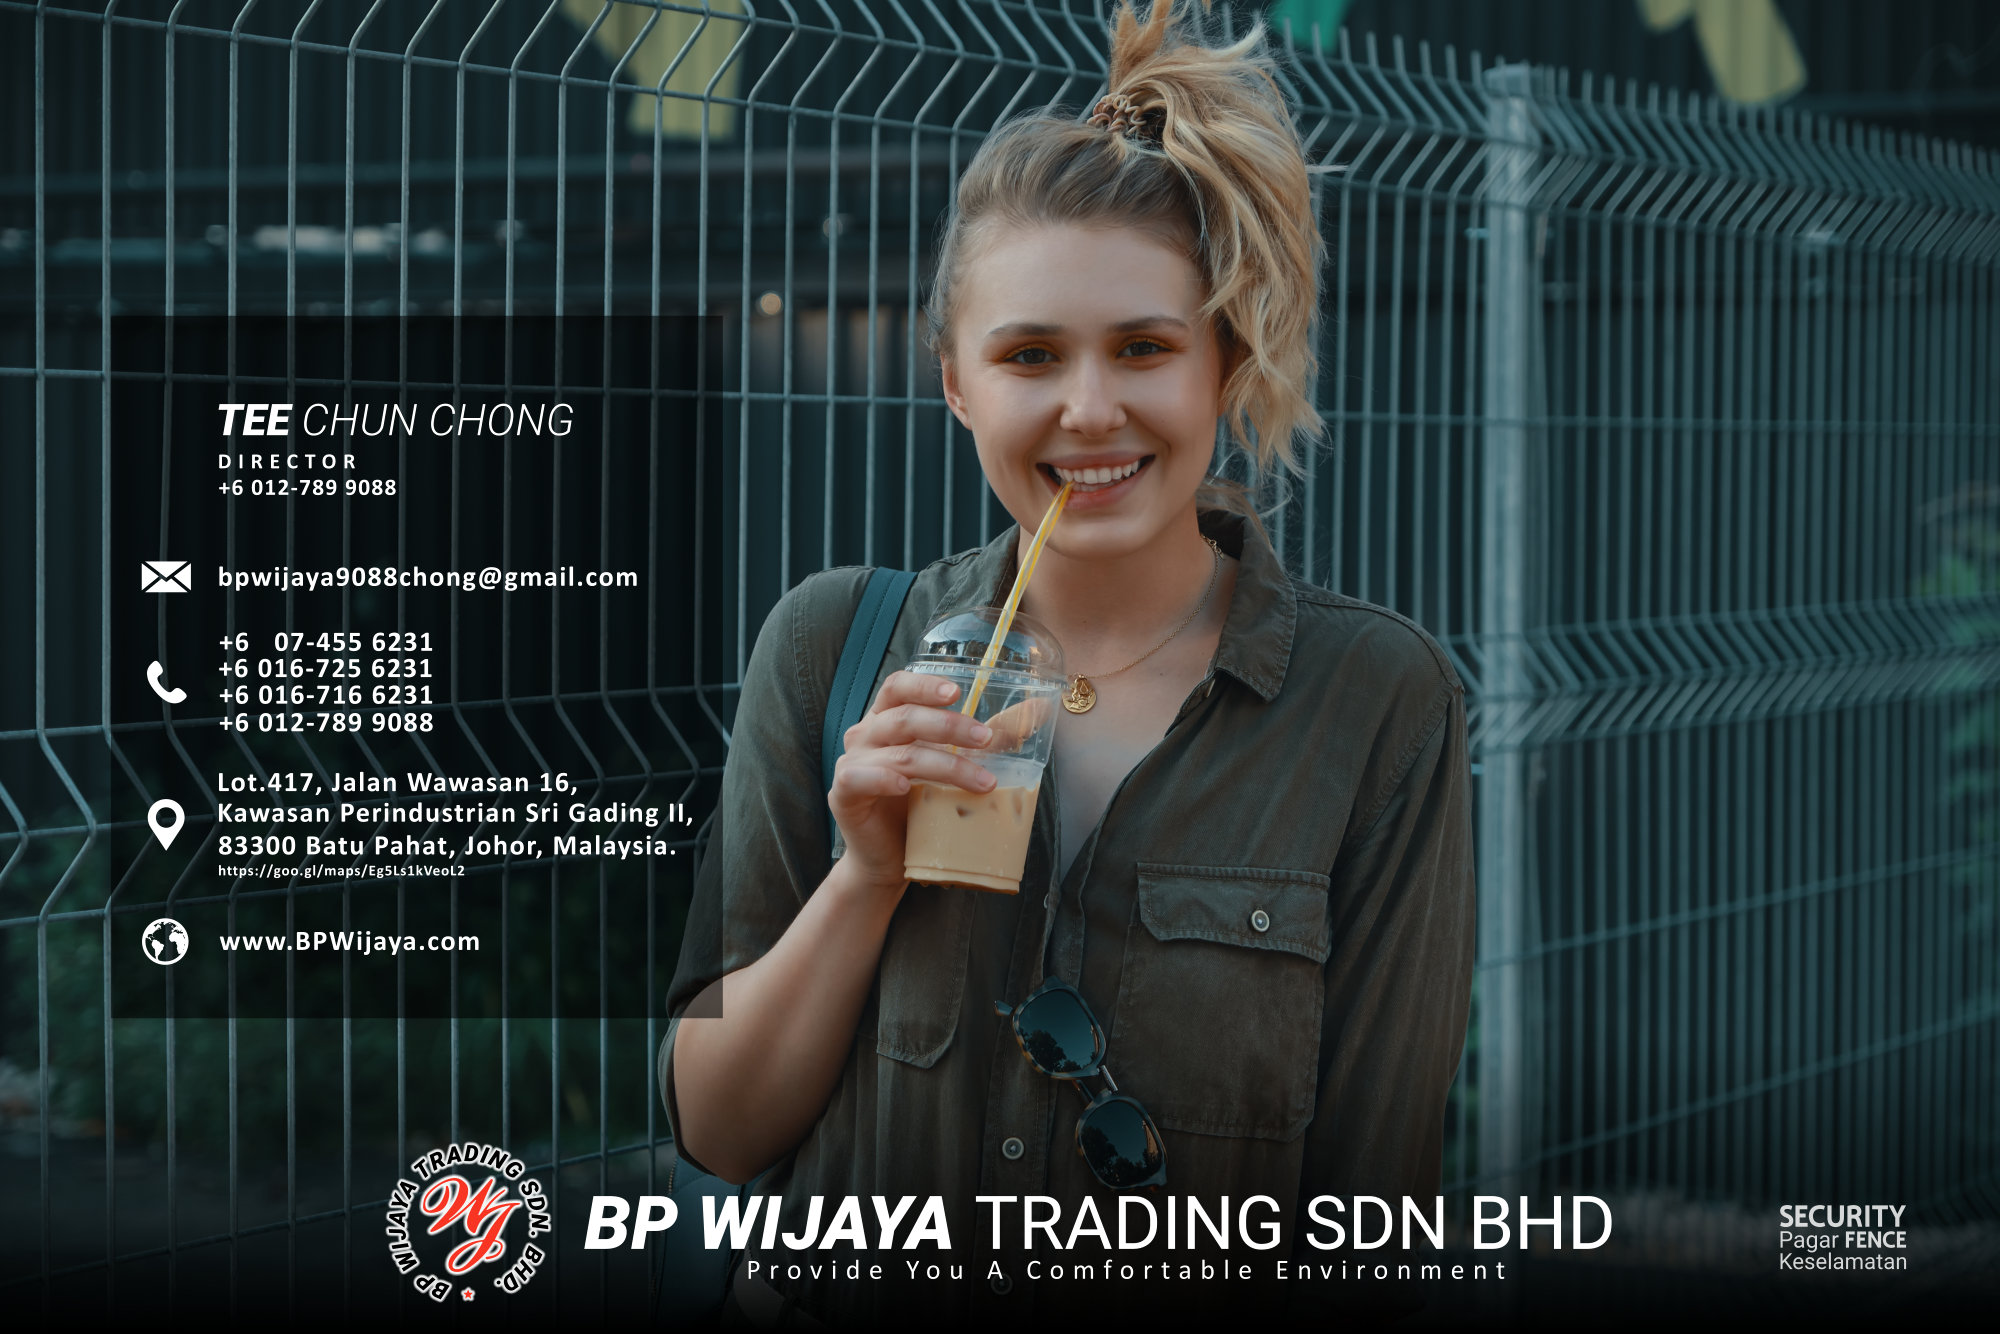 Kuala Lumpur Security Fence Supply we are manufacturer of security fence BP Wijaya Trading Sdn Bhd Safety Fence Building Materials for Housing Construction factory fence house beauty fence A03-016